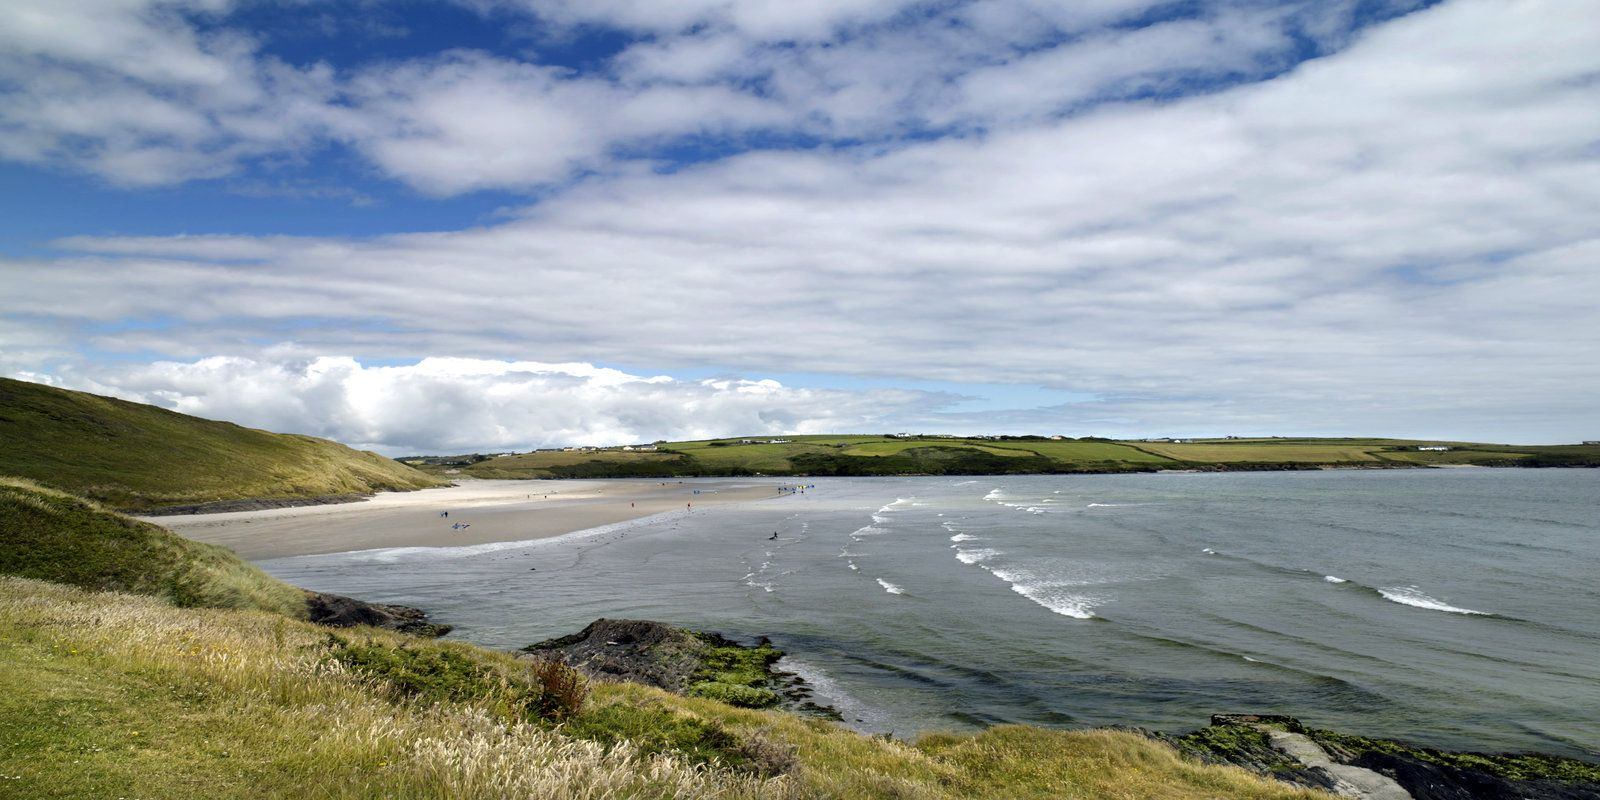 Inchydoney Beach Celtic Ross